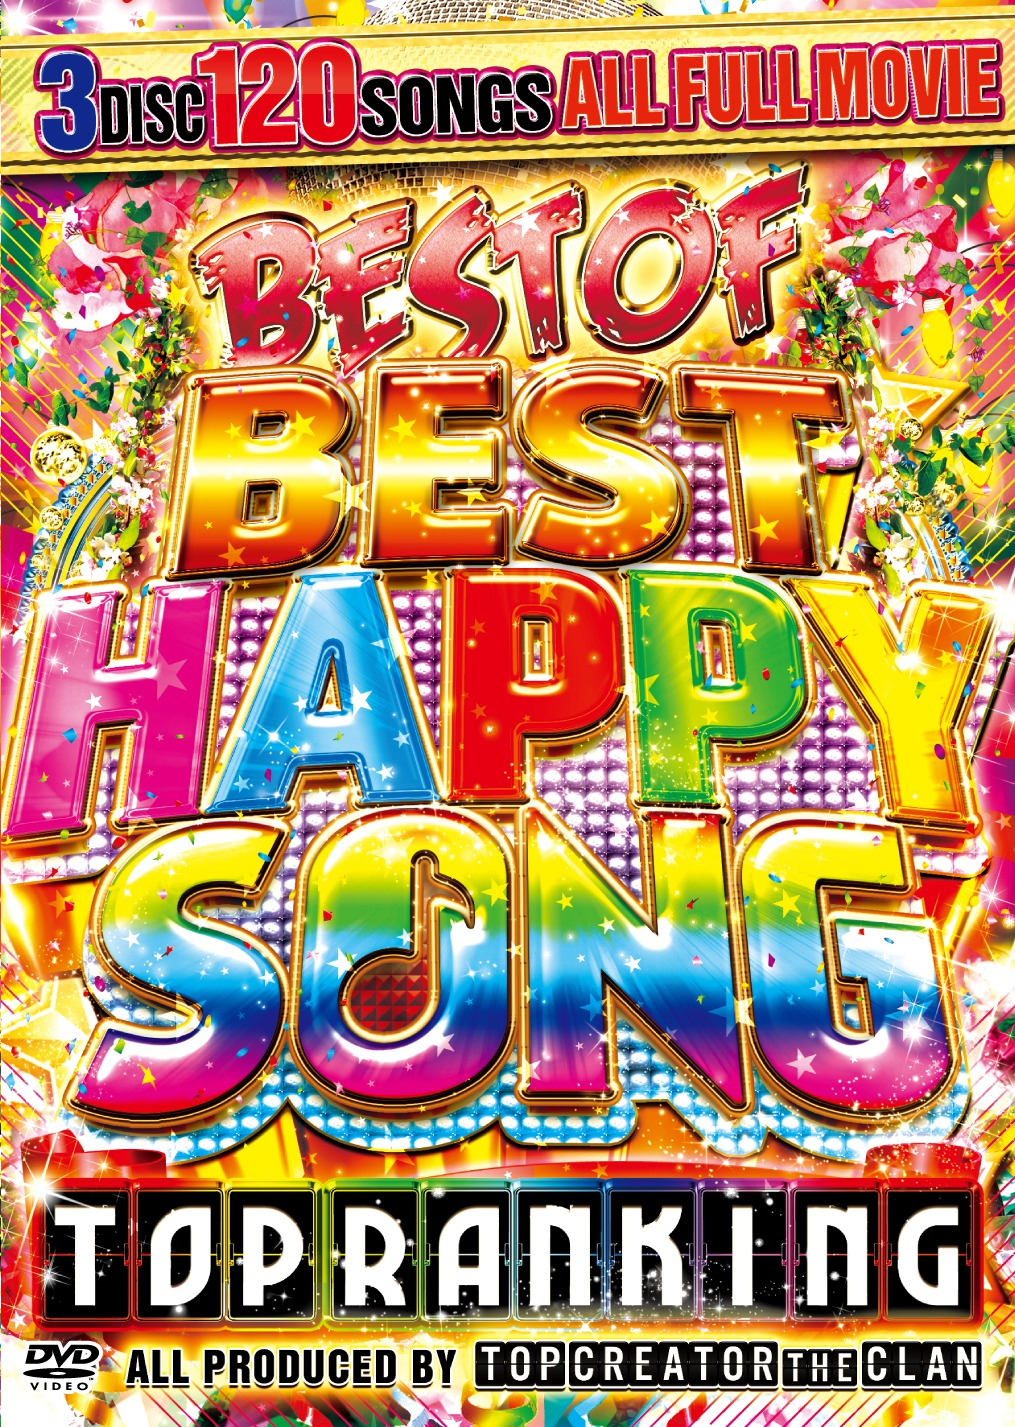 2017 BEST HAPPY SONG